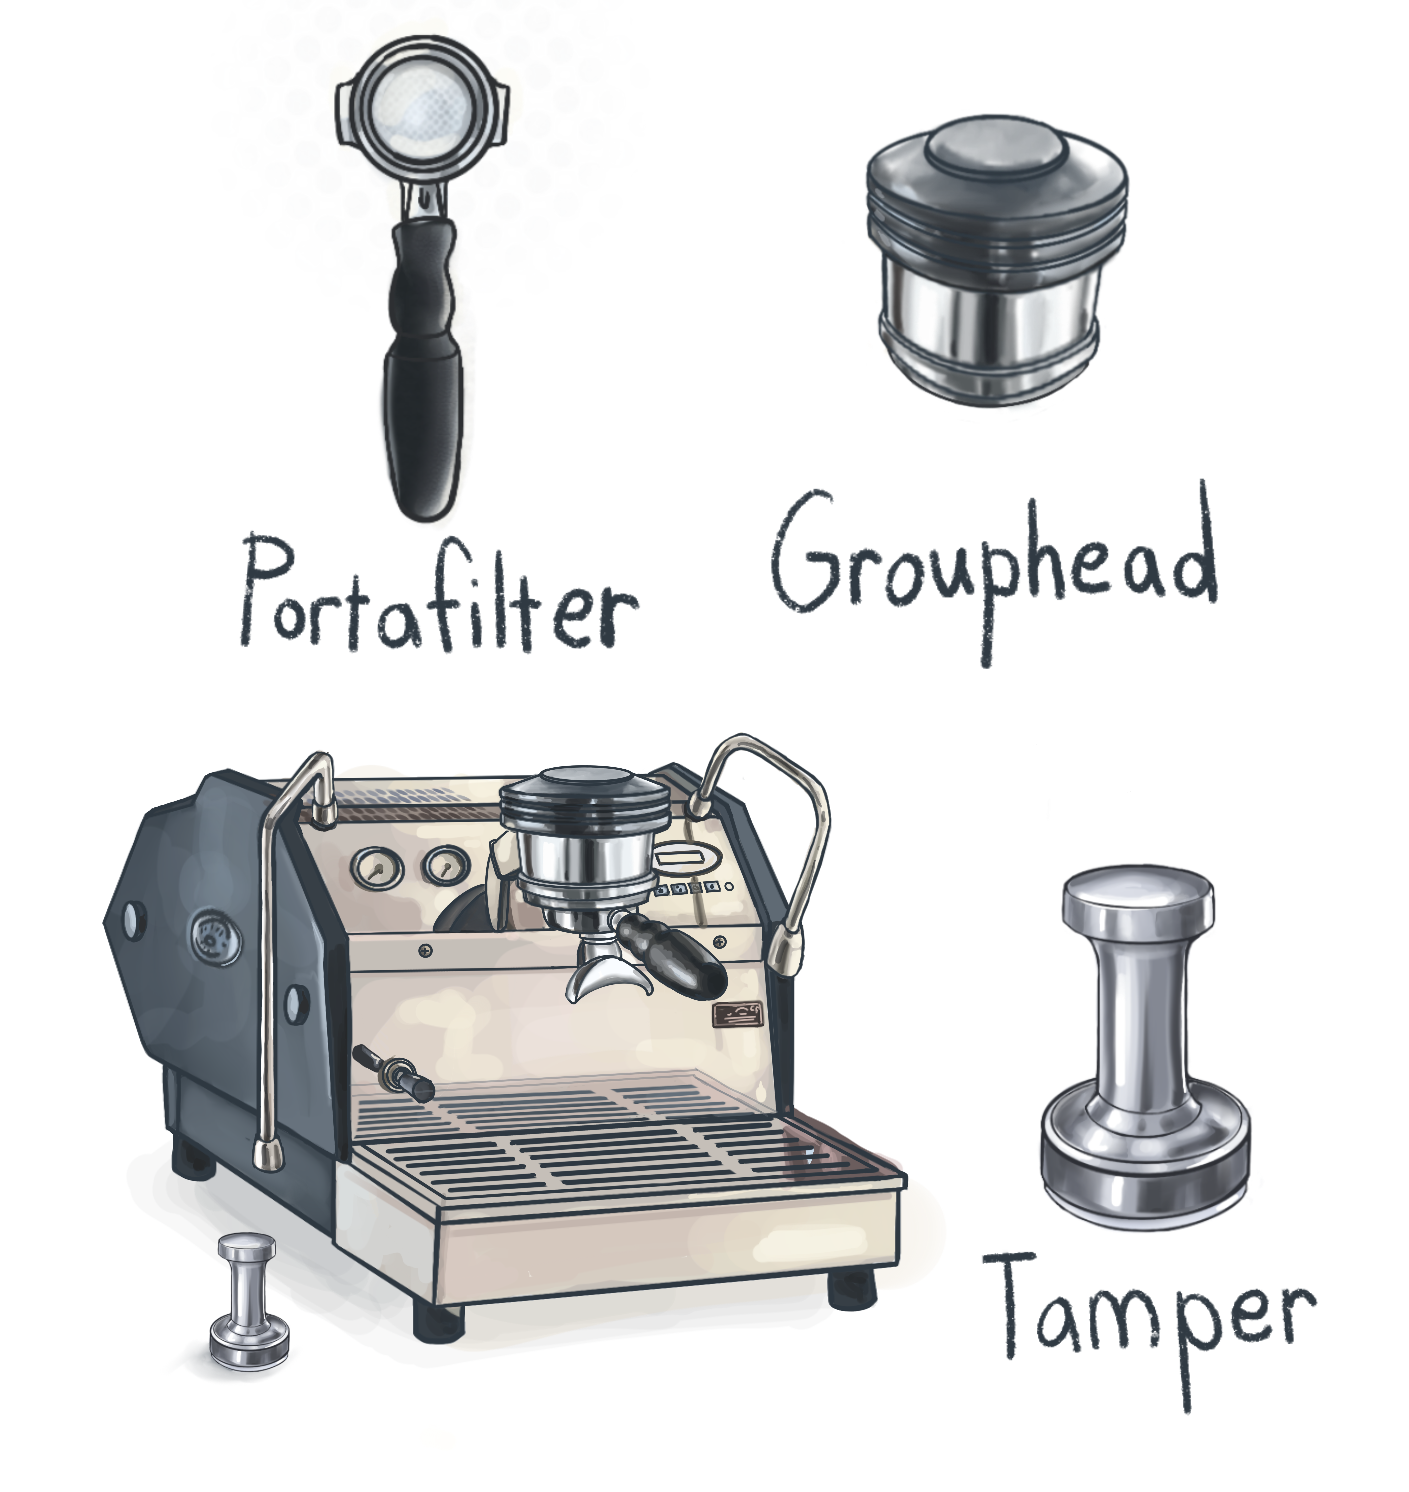 Hand drawn illustration of espresso machine with tamper, group head and portafilter labeled